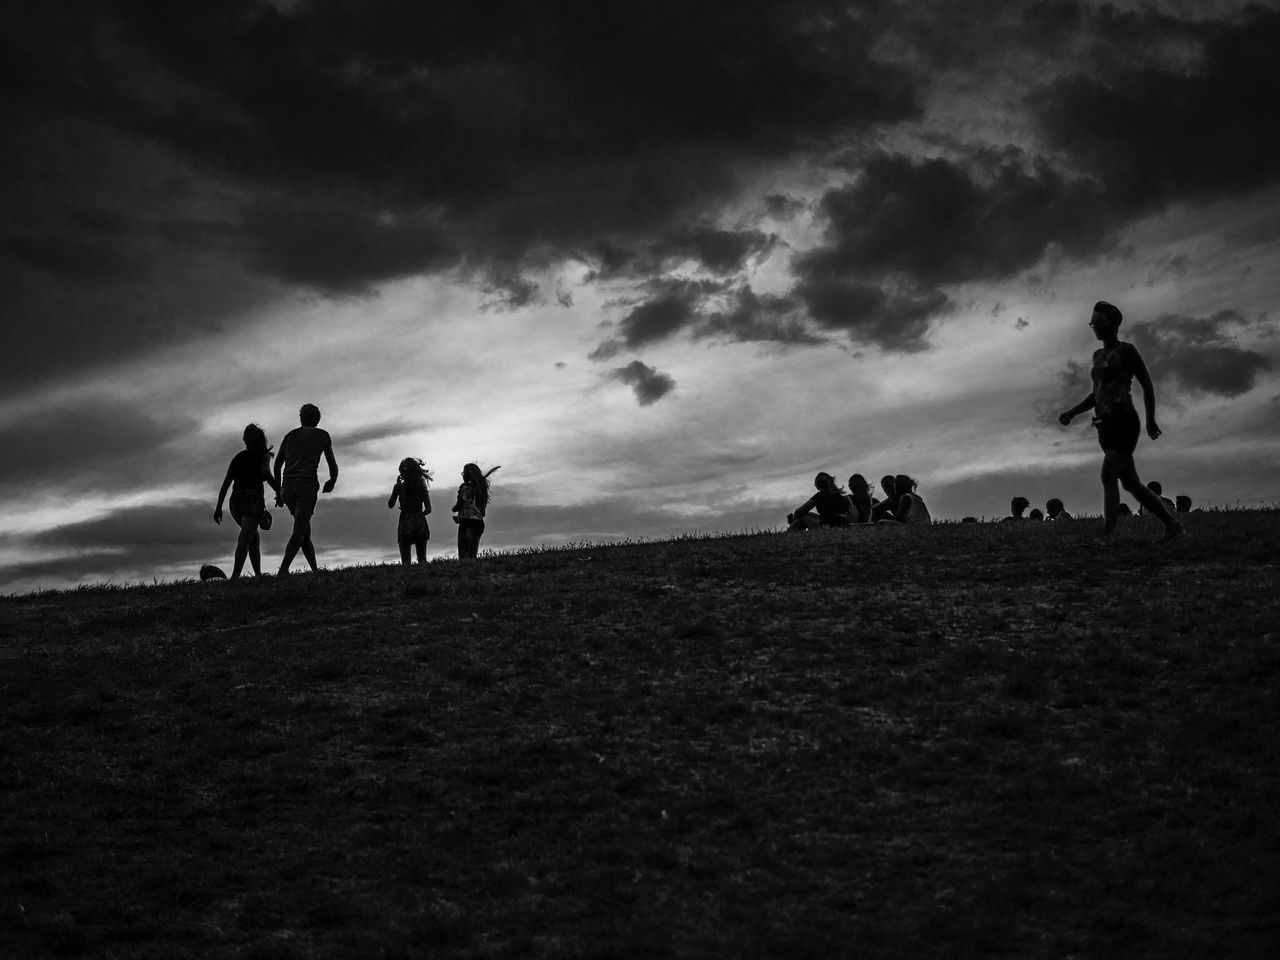 People On Field Against Cloudy Sky